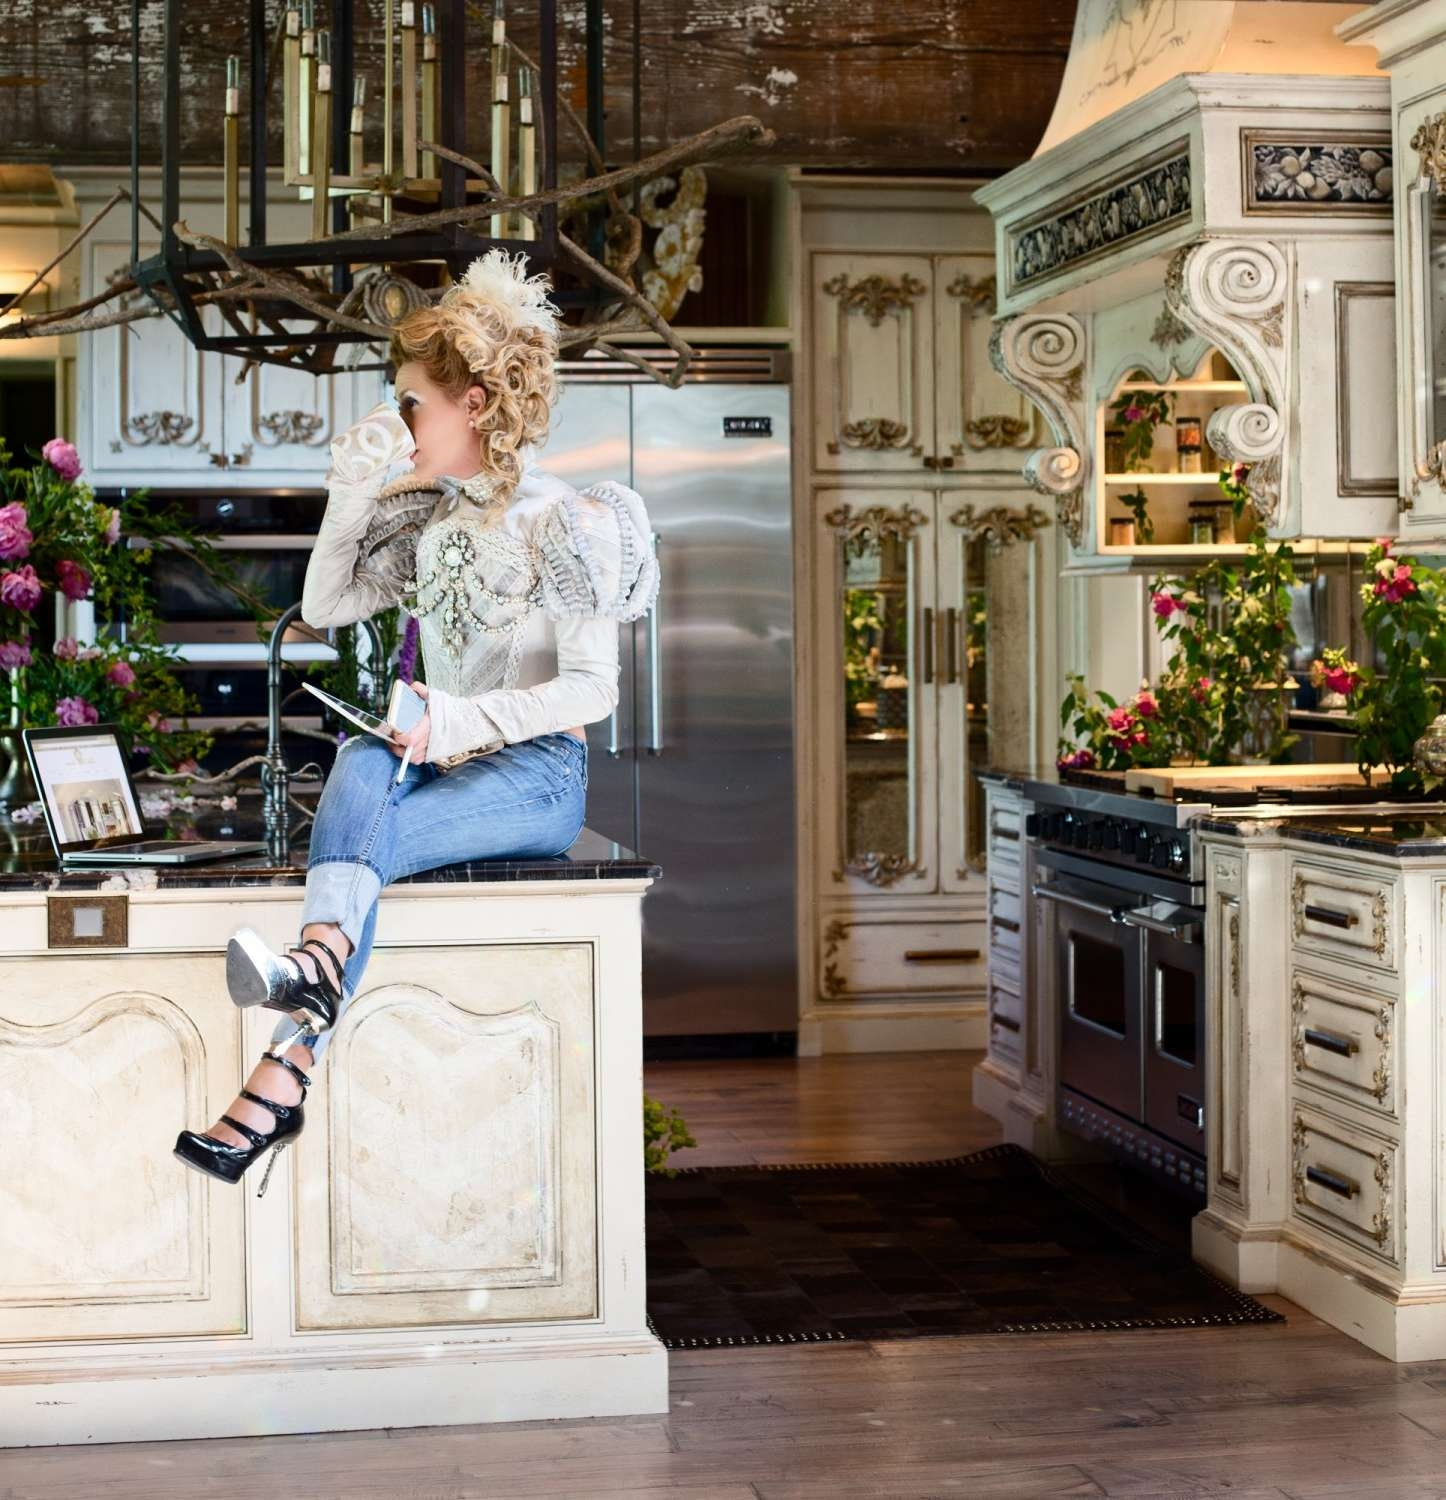 Habersham Home | Lifestyle Custom Furniture & Cabinetry Intended For Haversham Sideboards (View 6 of 20)